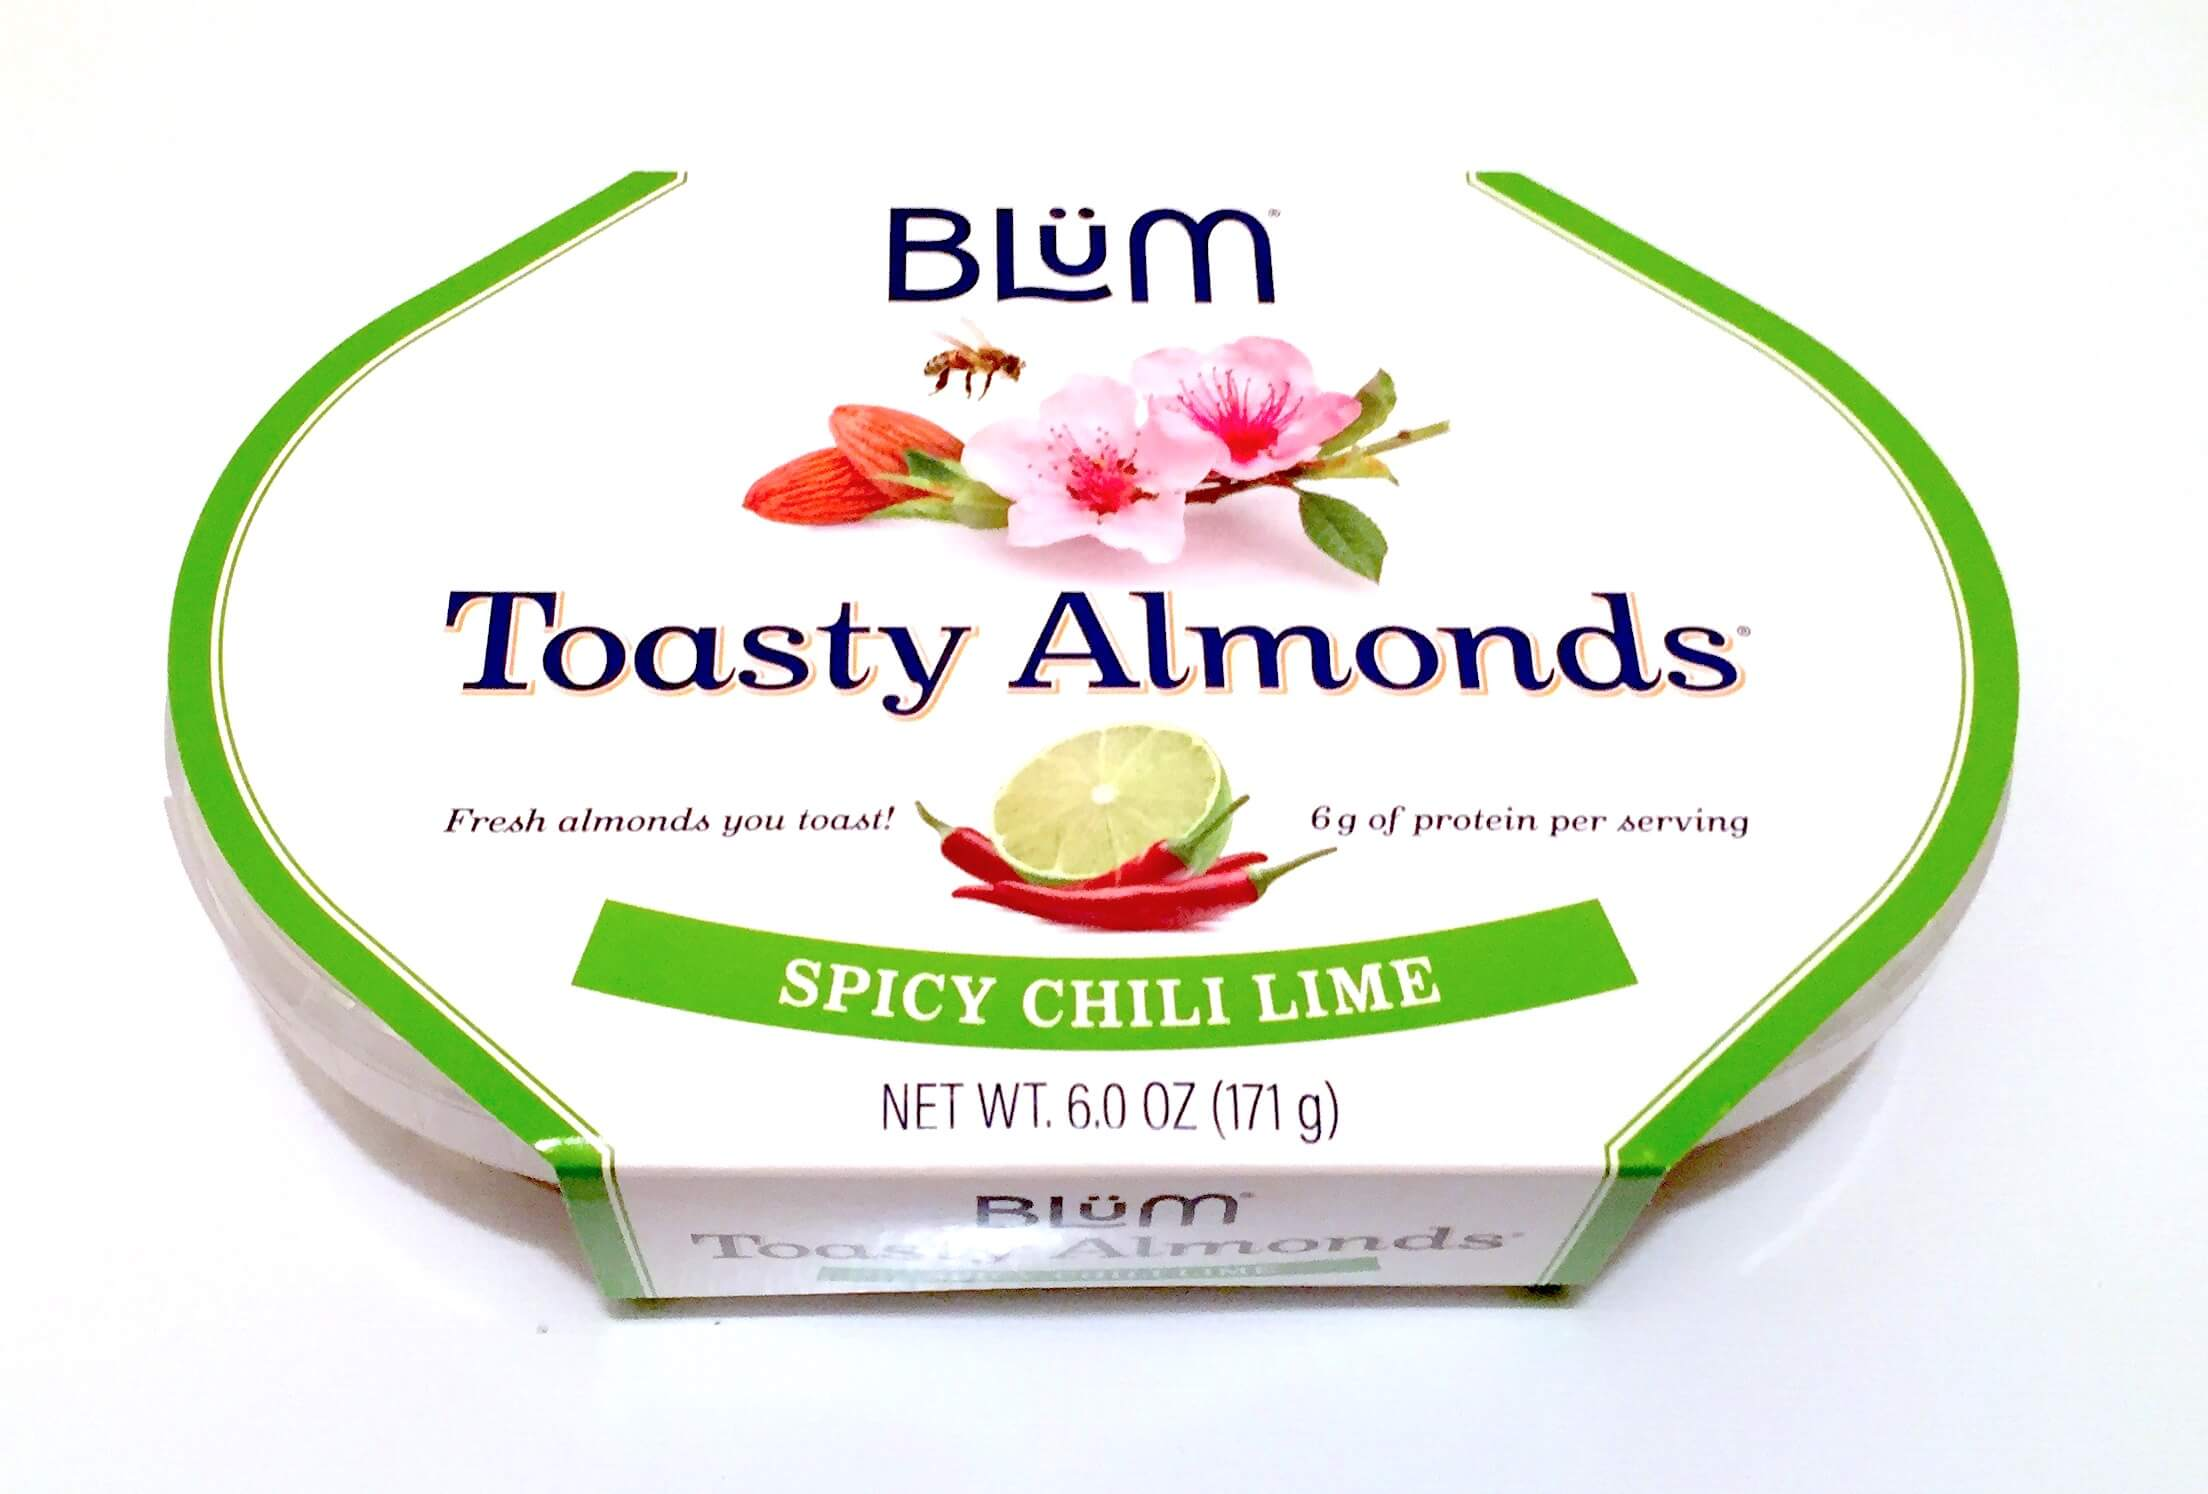 blums-toasty-almonds-spicy-chili-lime-packaging-050820